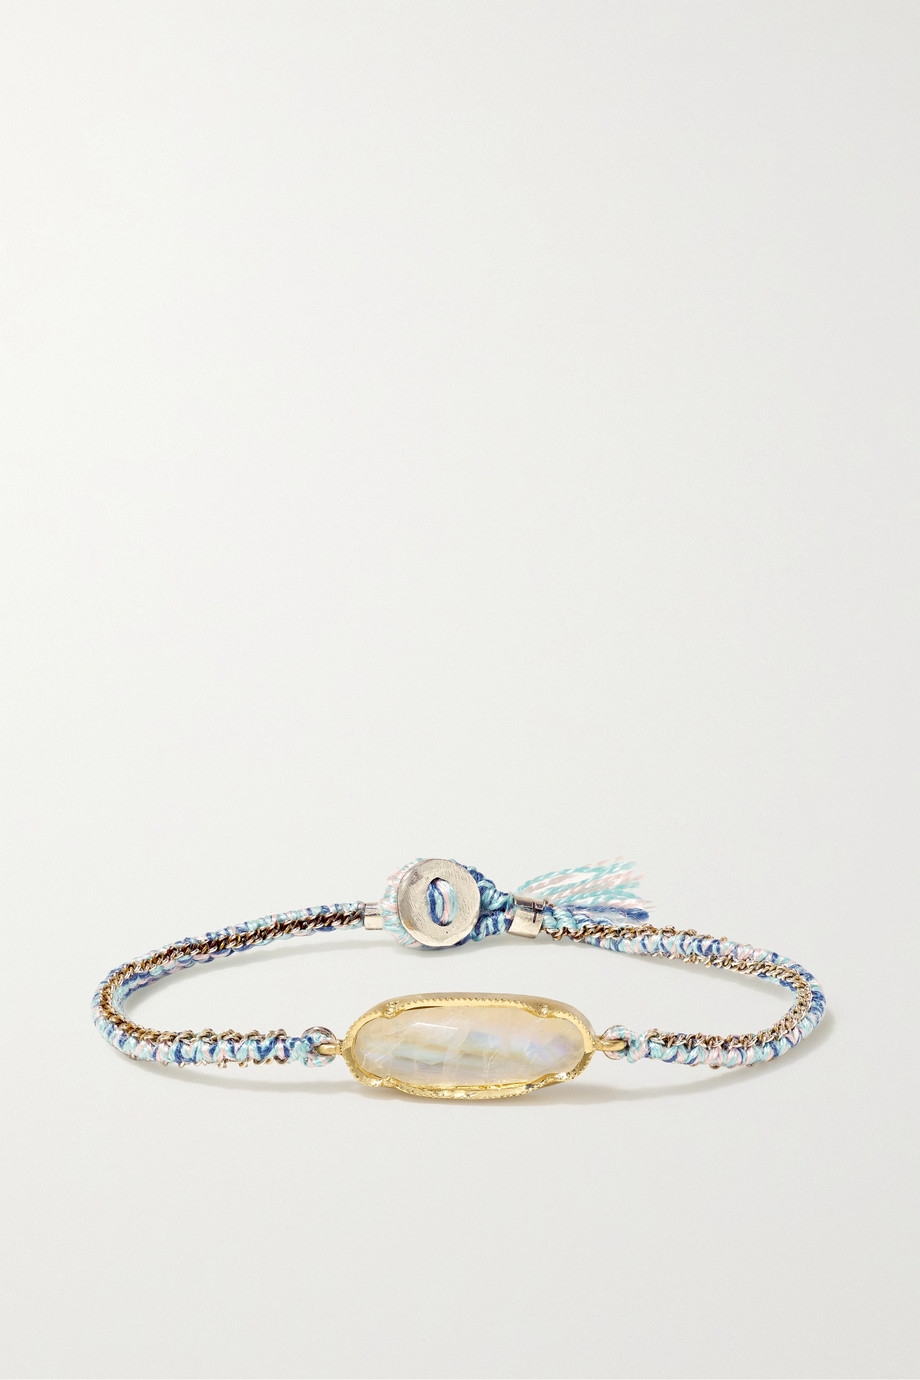 Brooke Gregson Icicle 14-karat gold, sterling silver, silk and moonstone bracelet